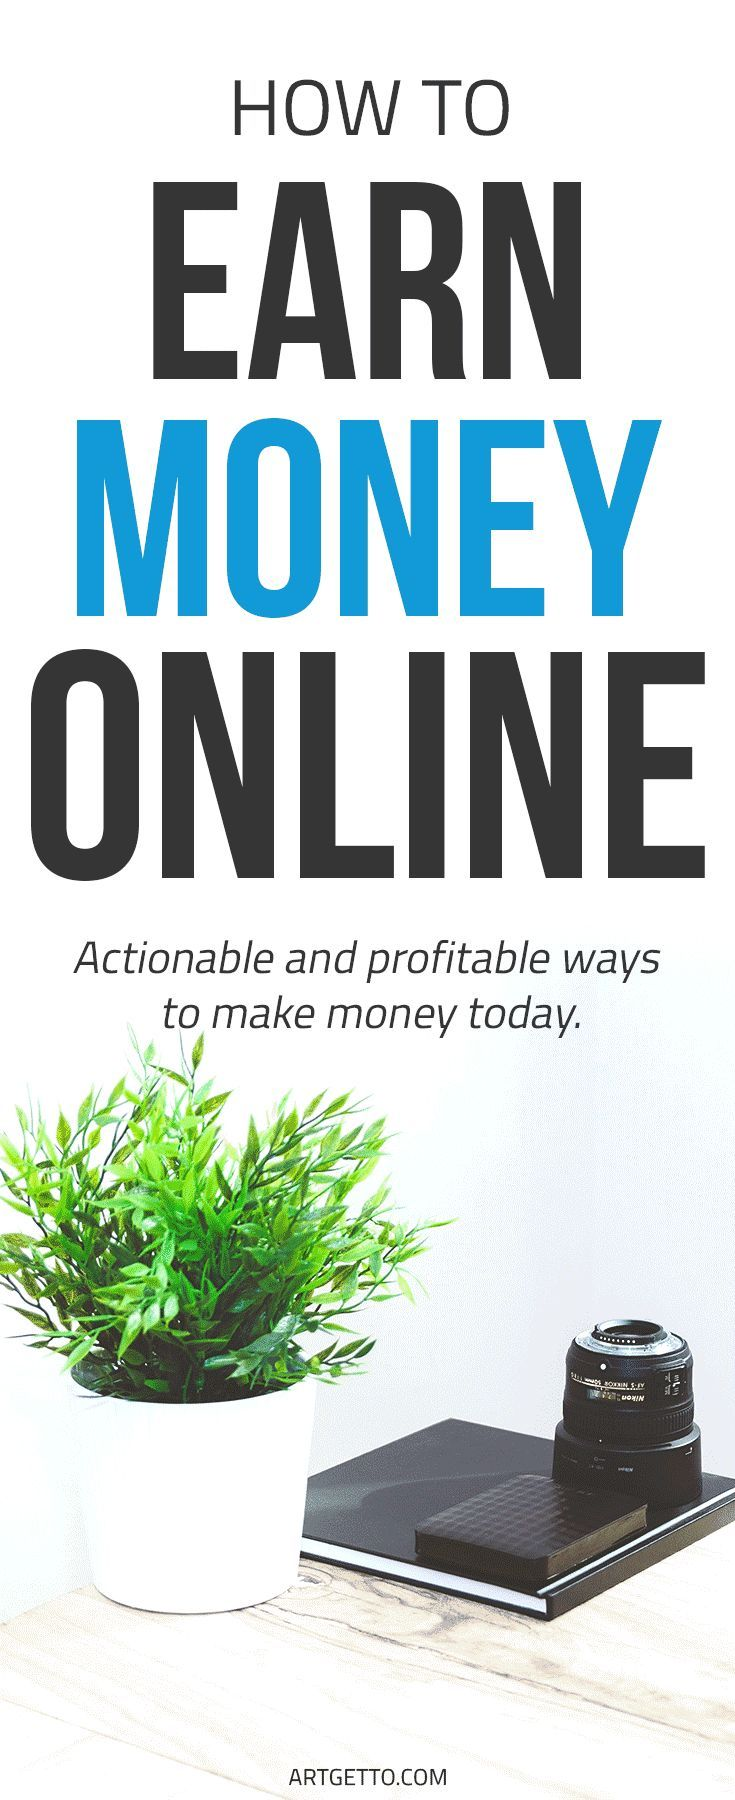 How to earn money online | Actionable and profitable ways to make money today Earn money online | Make Money Online | Make Money from Home #Blog #Blogging #DIY